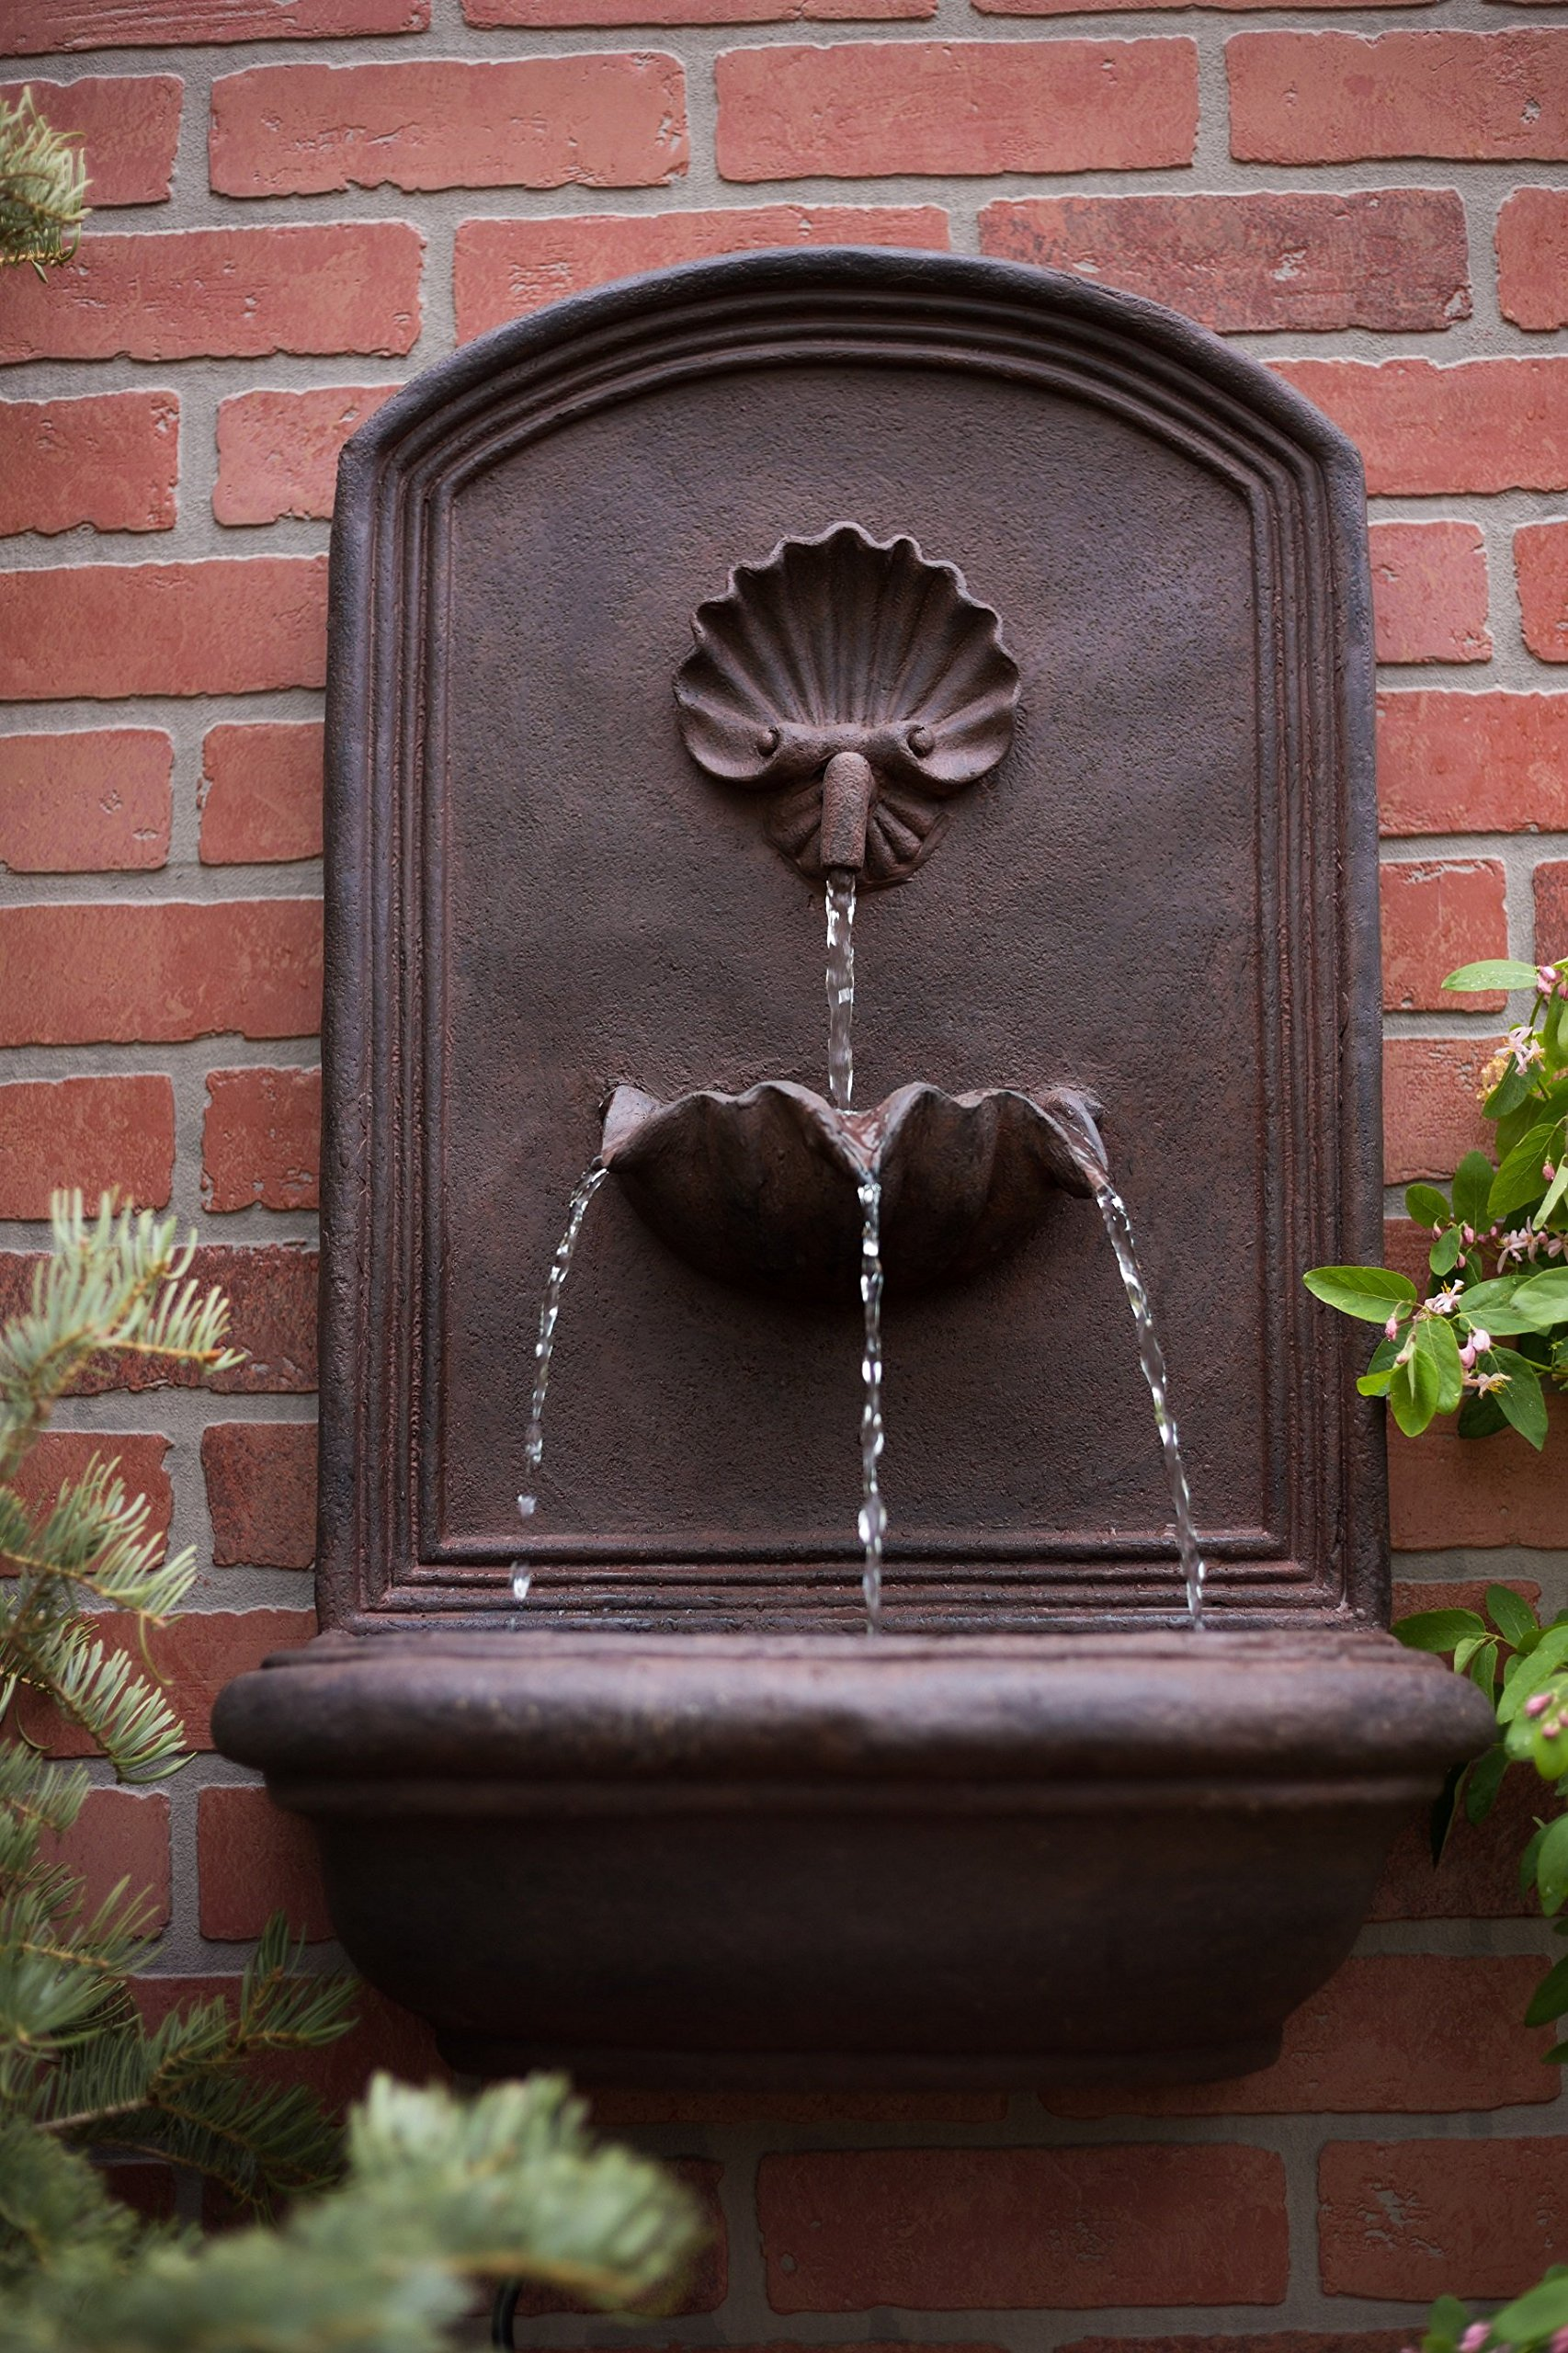 The Napoli - Outdoor Wall Fountain - Weathered Bronze - Water Feature for Garden, Patio and Landscape Enhancement by Harmony Fountains